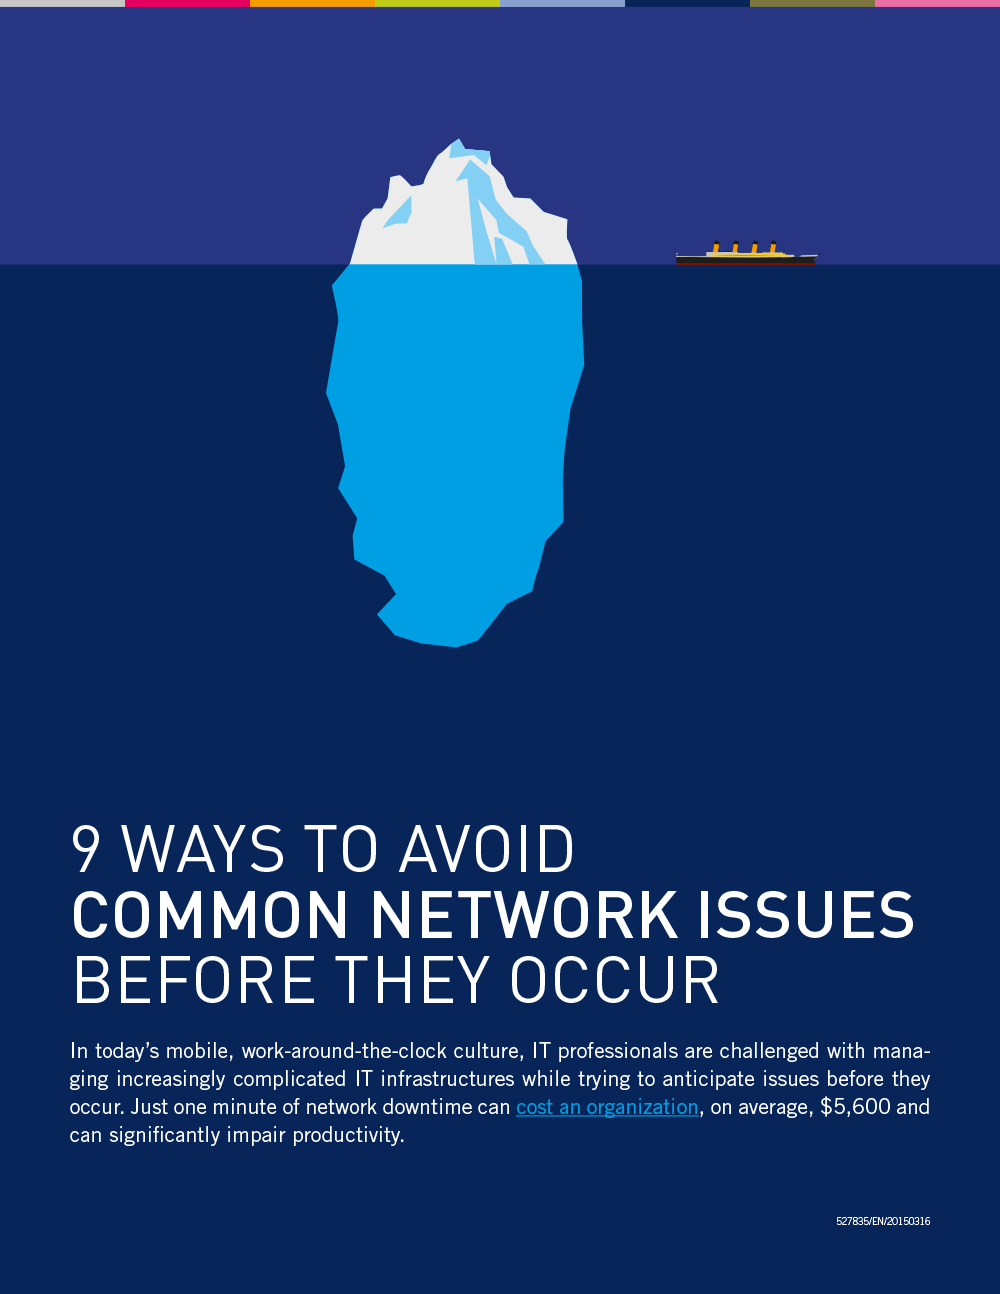 Tip Sheet 9 Ways to Avoid Common Network Issues Before They Occur